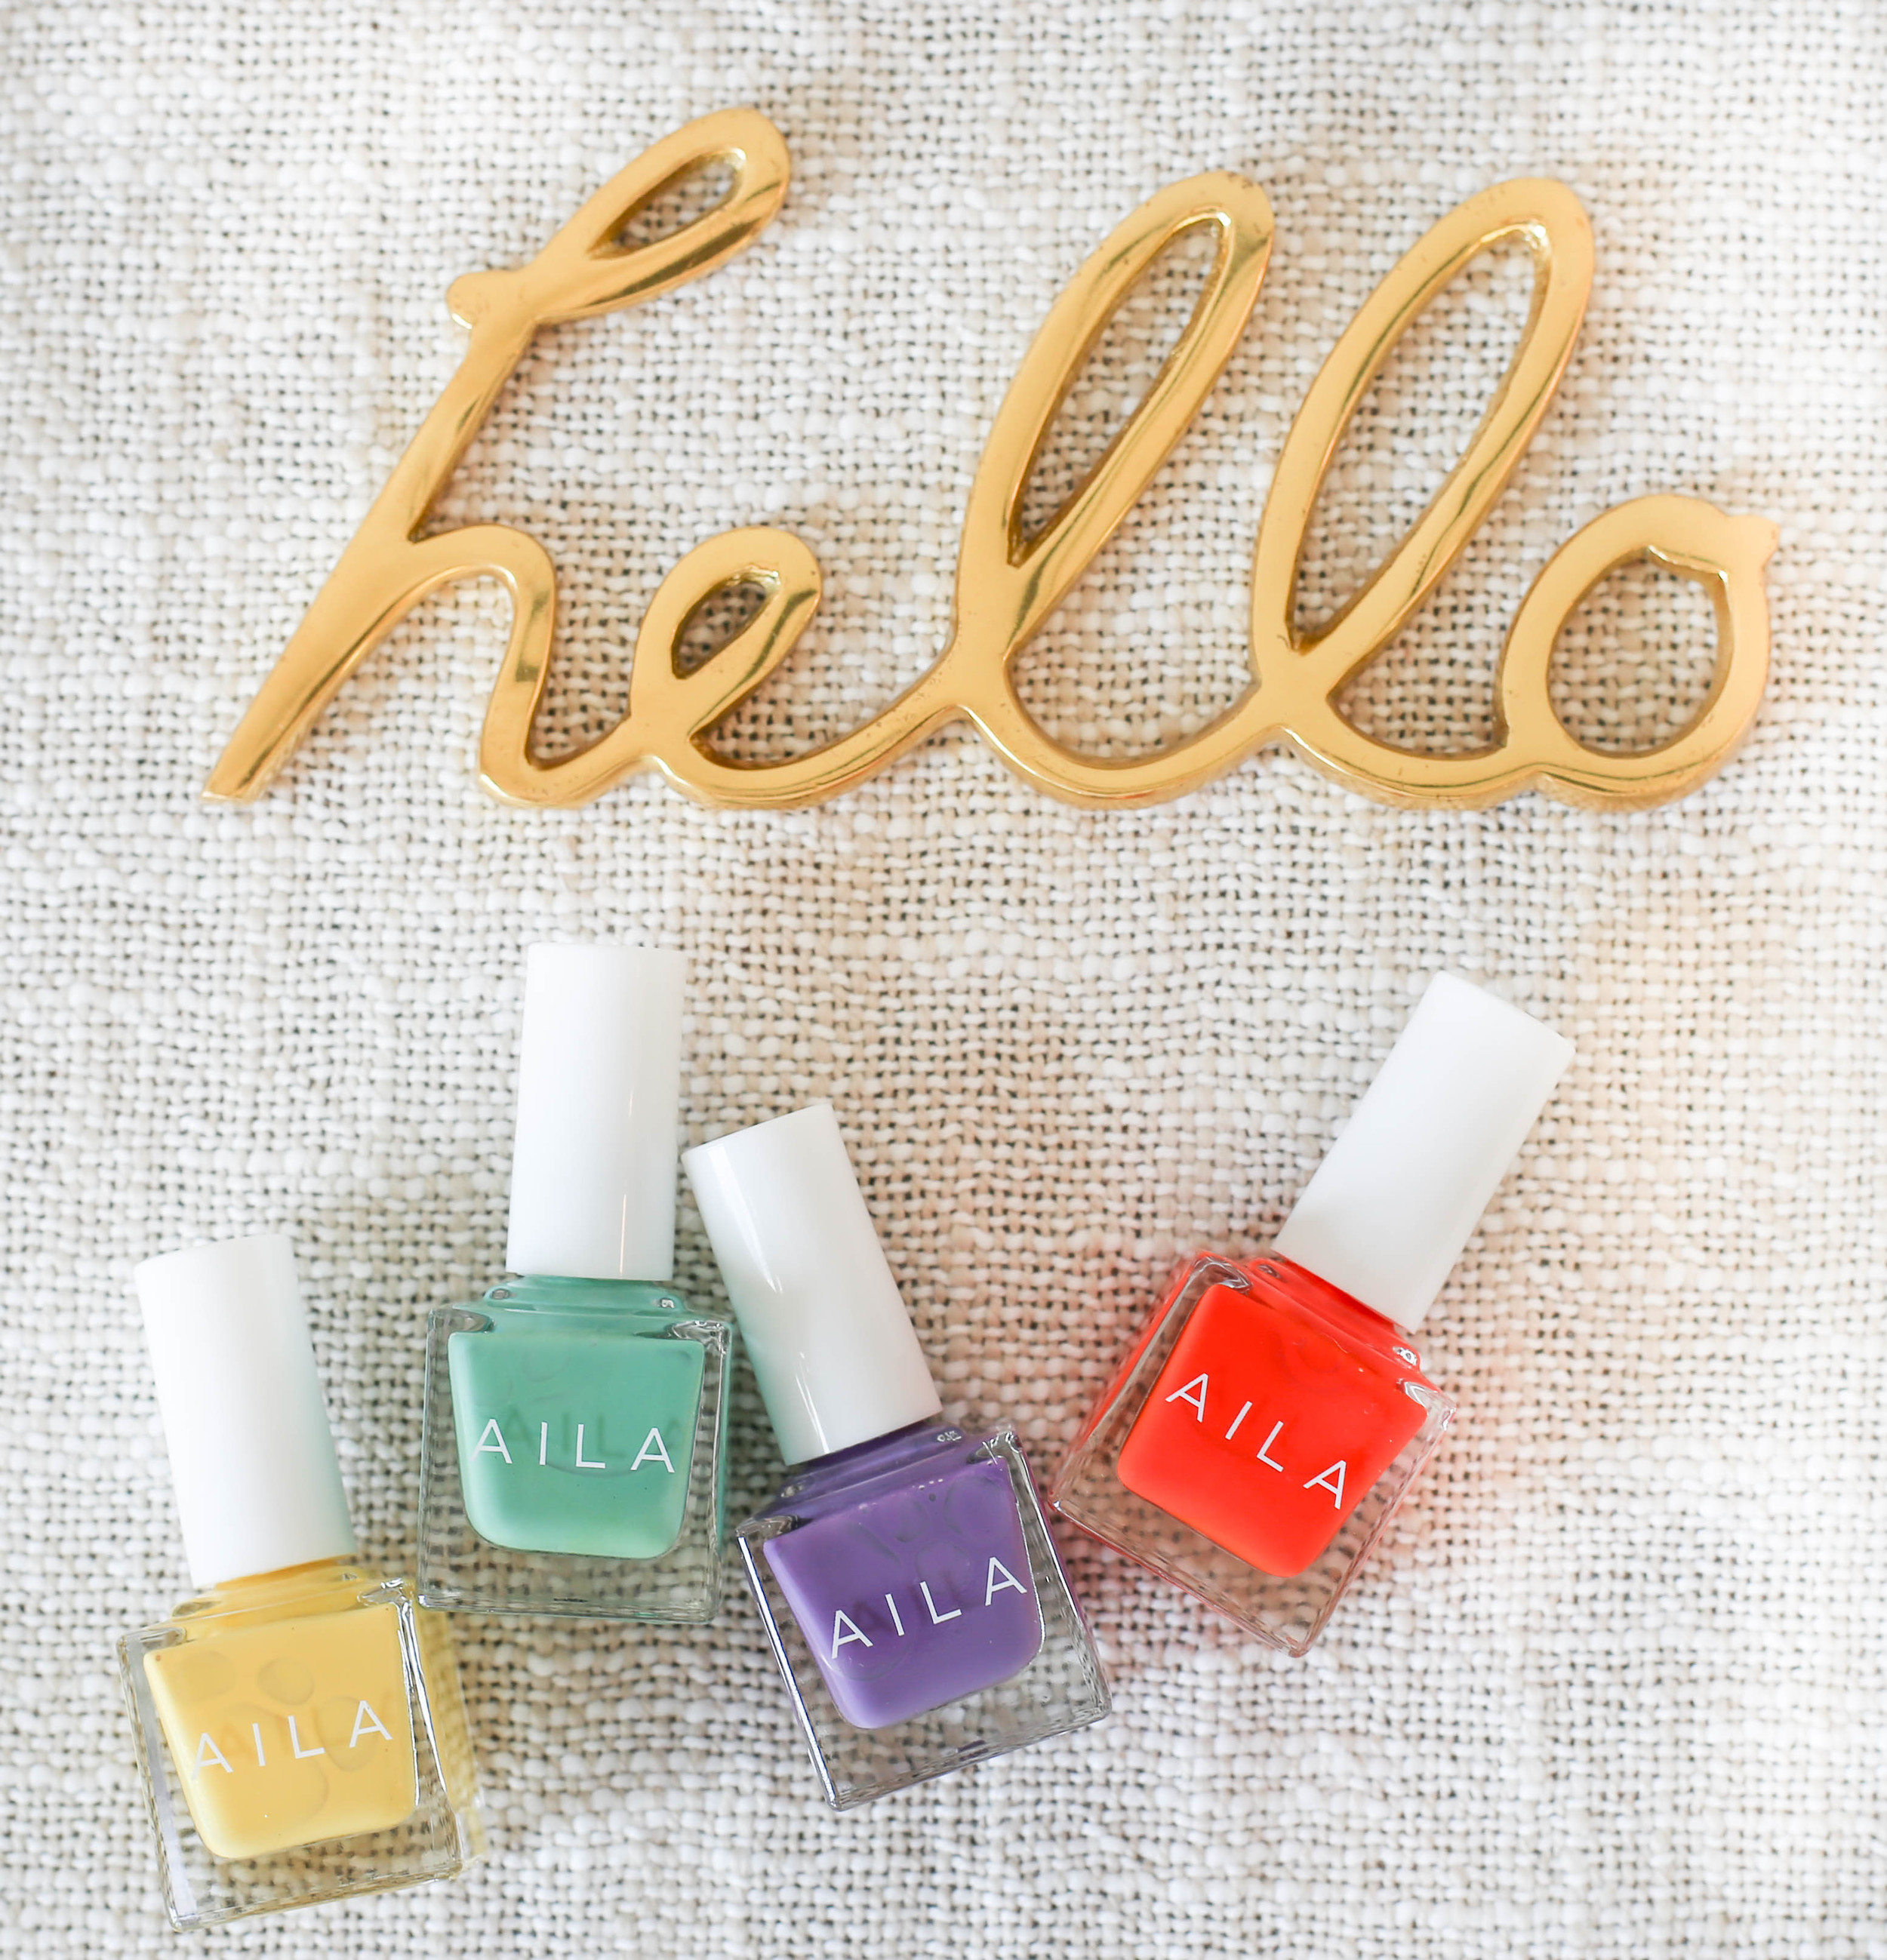 8 free nail lacquer